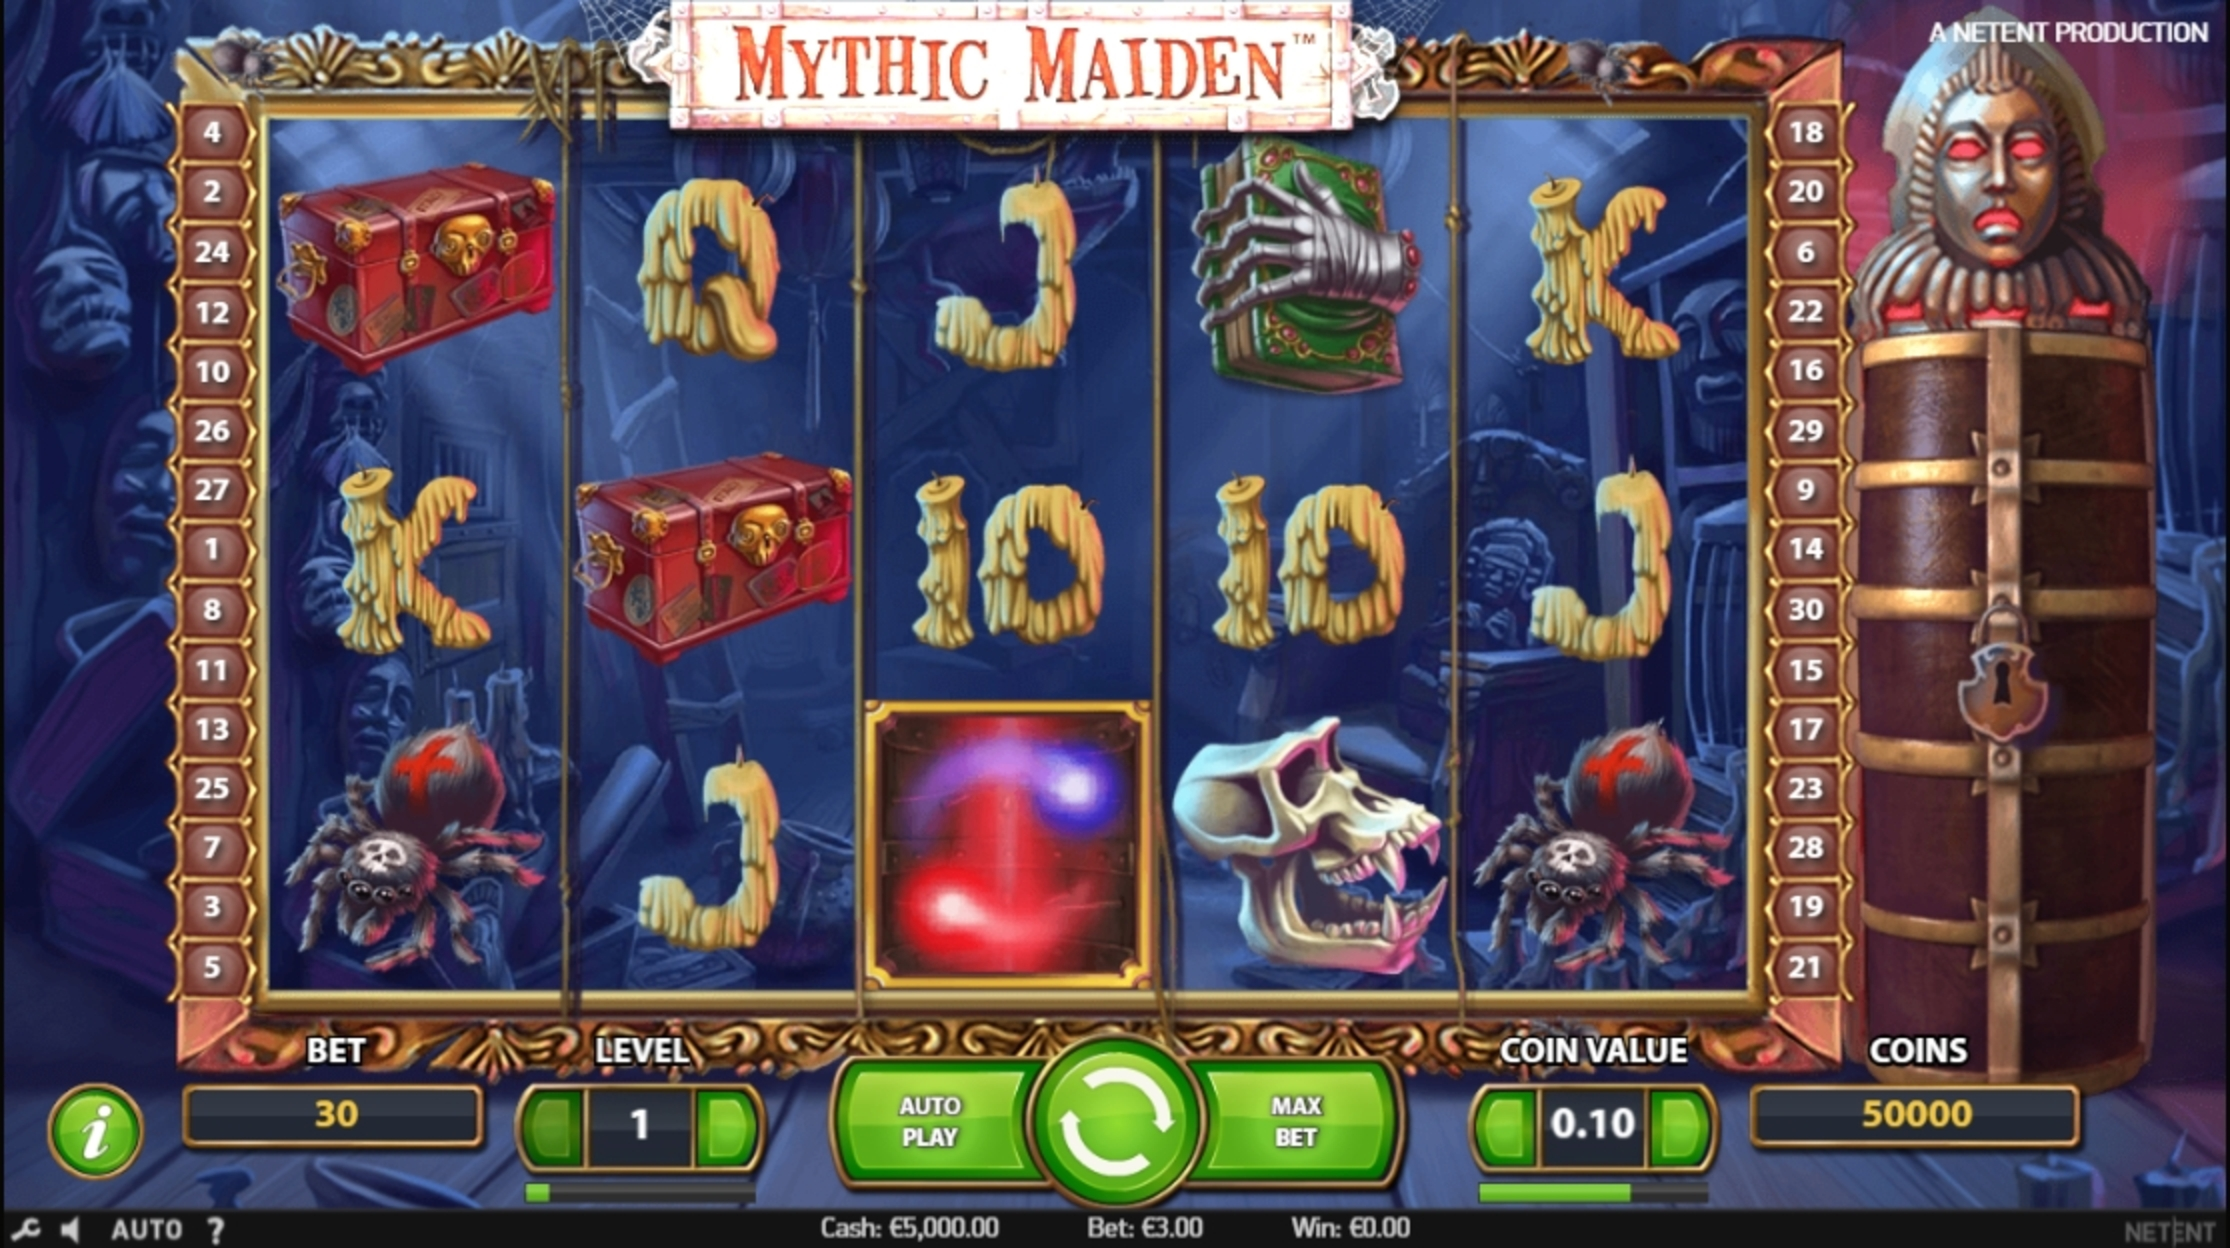 Reels in Mythic Maiden Slot Game by NetEnt